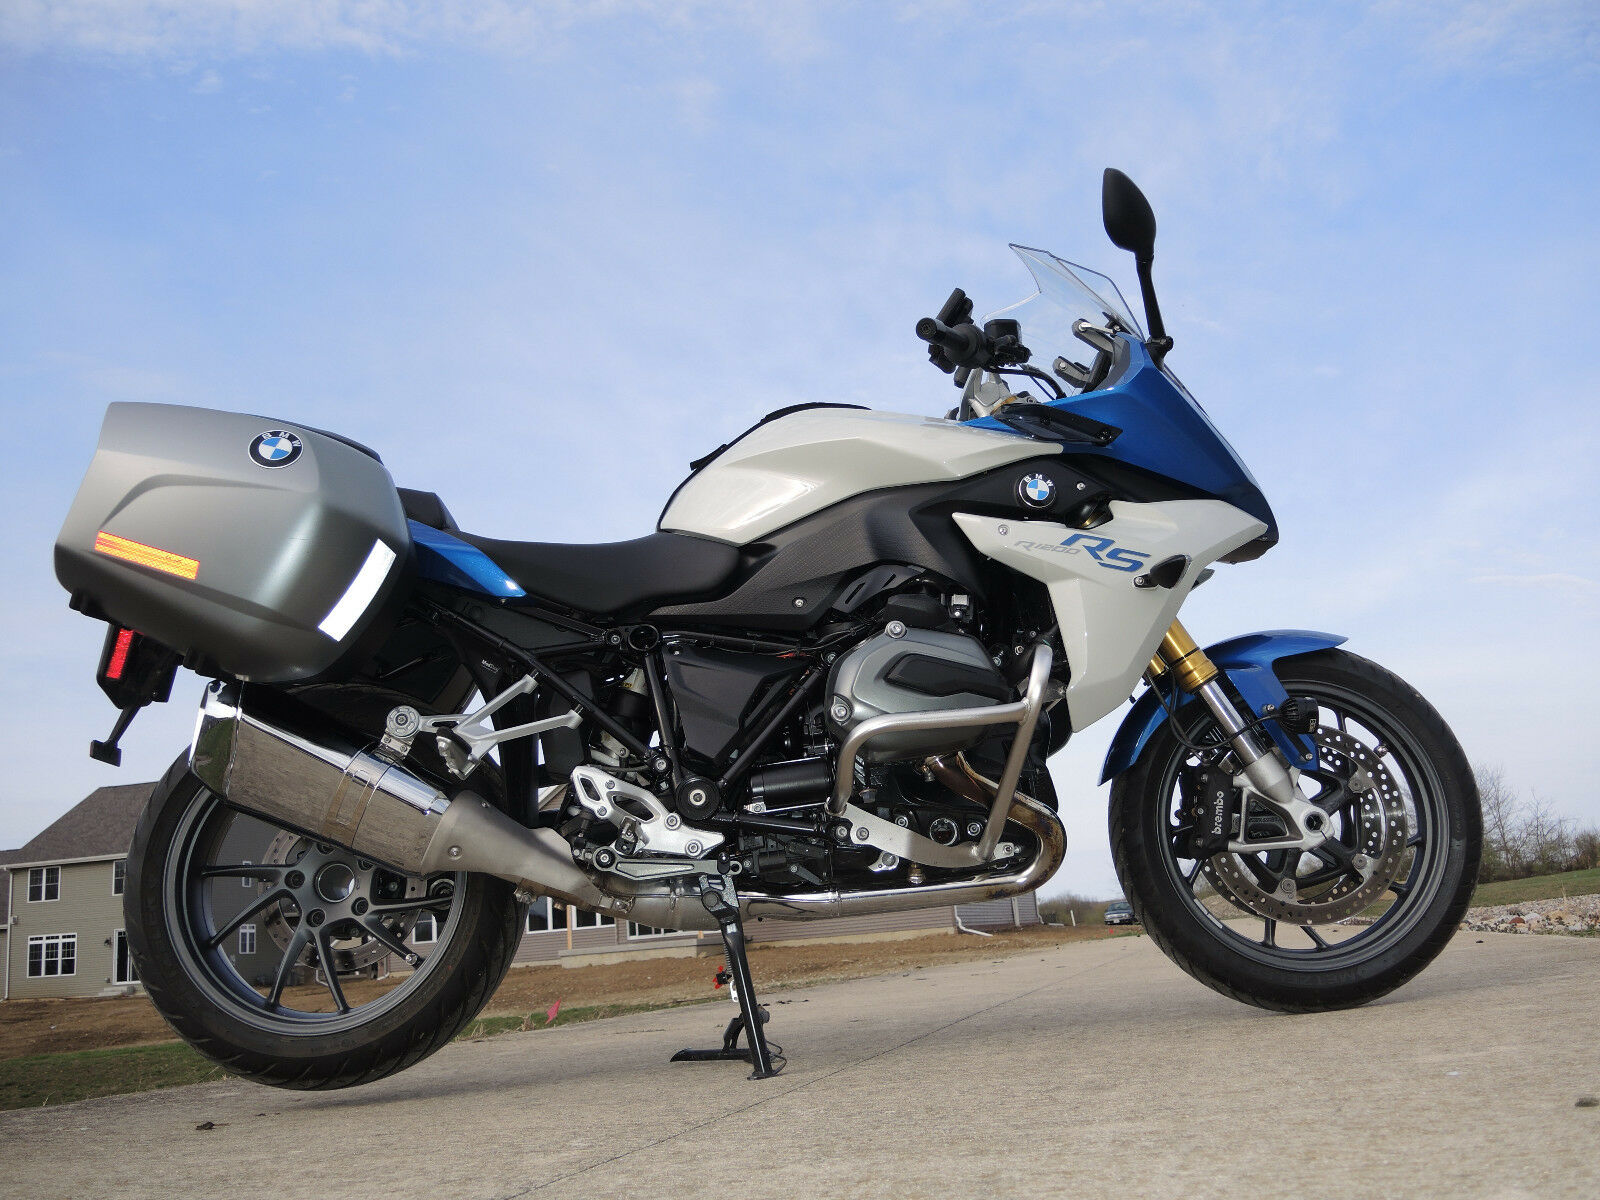 2016 bmw r1200rs loaded 7210 miles nice extras luggage. Black Bedroom Furniture Sets. Home Design Ideas